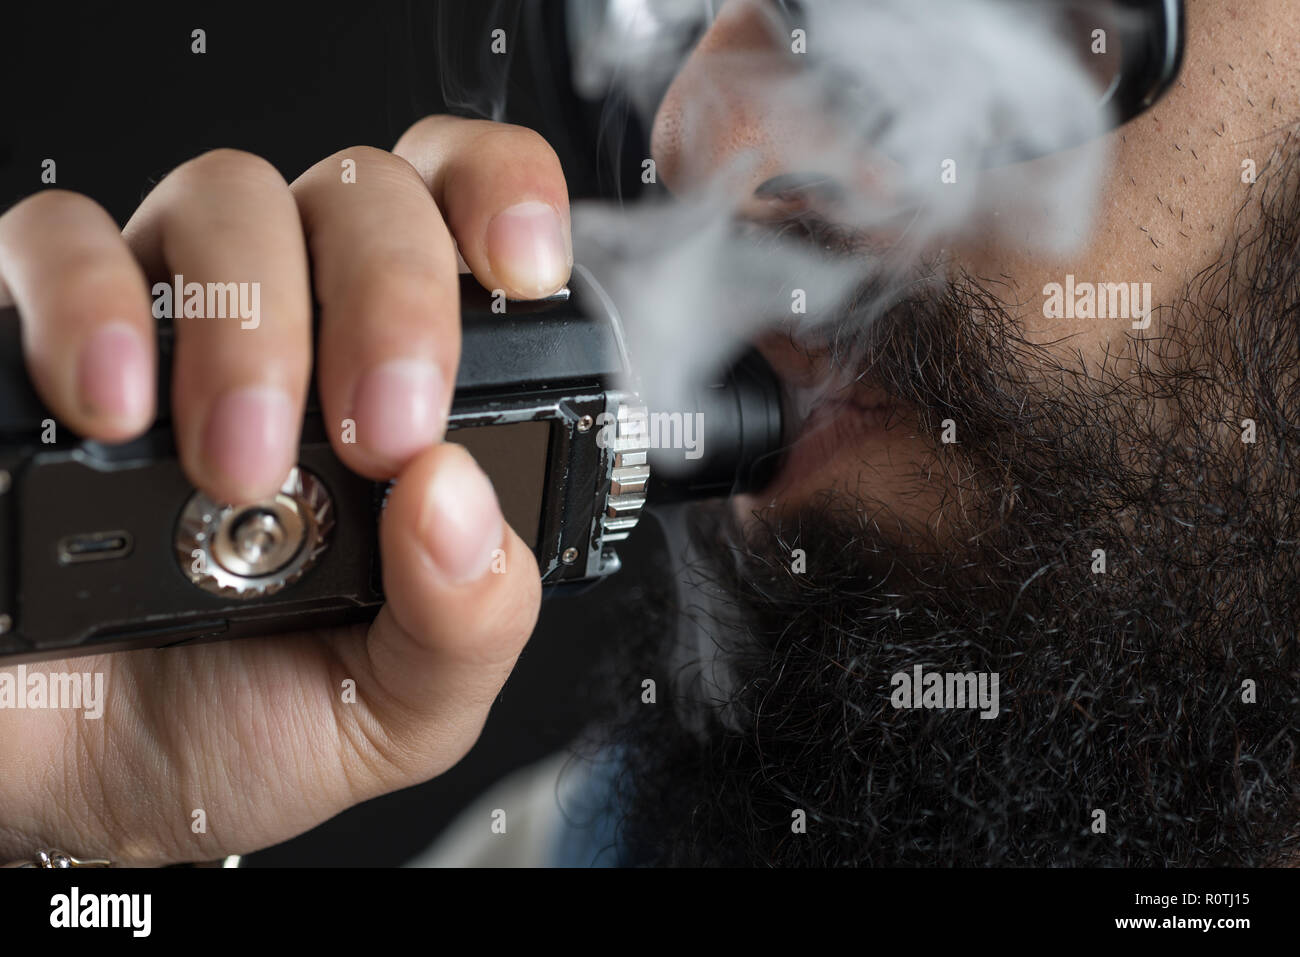 Close up of an unrecognizable young man smoking from a vape pen or vaporizer - Stock Image